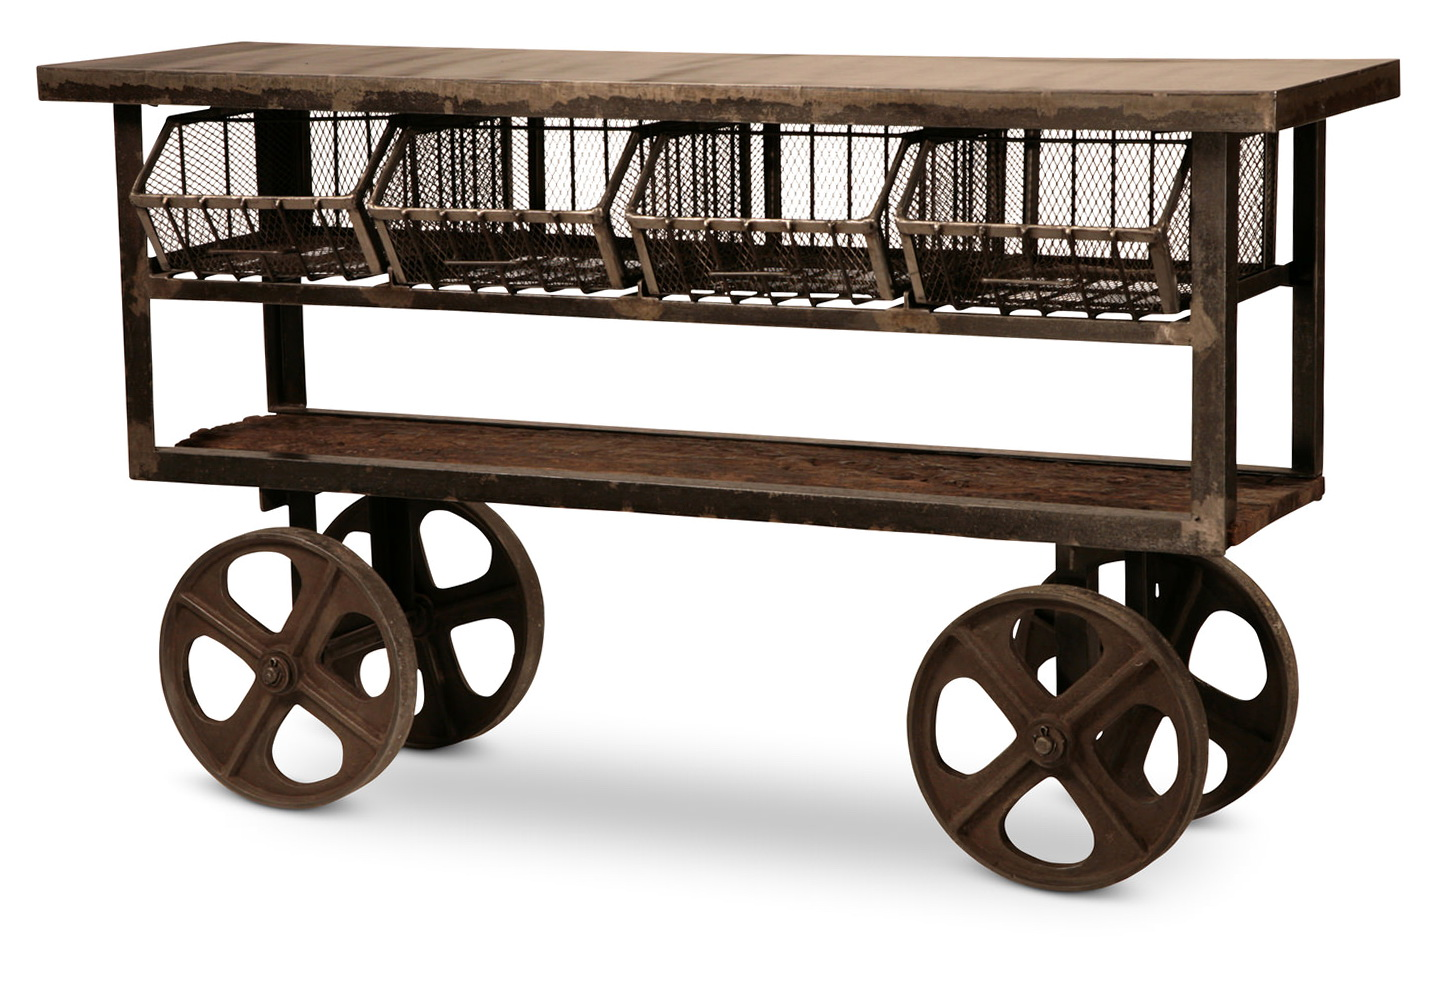 industrial console table with wheels home design ideas. Black Bedroom Furniture Sets. Home Design Ideas